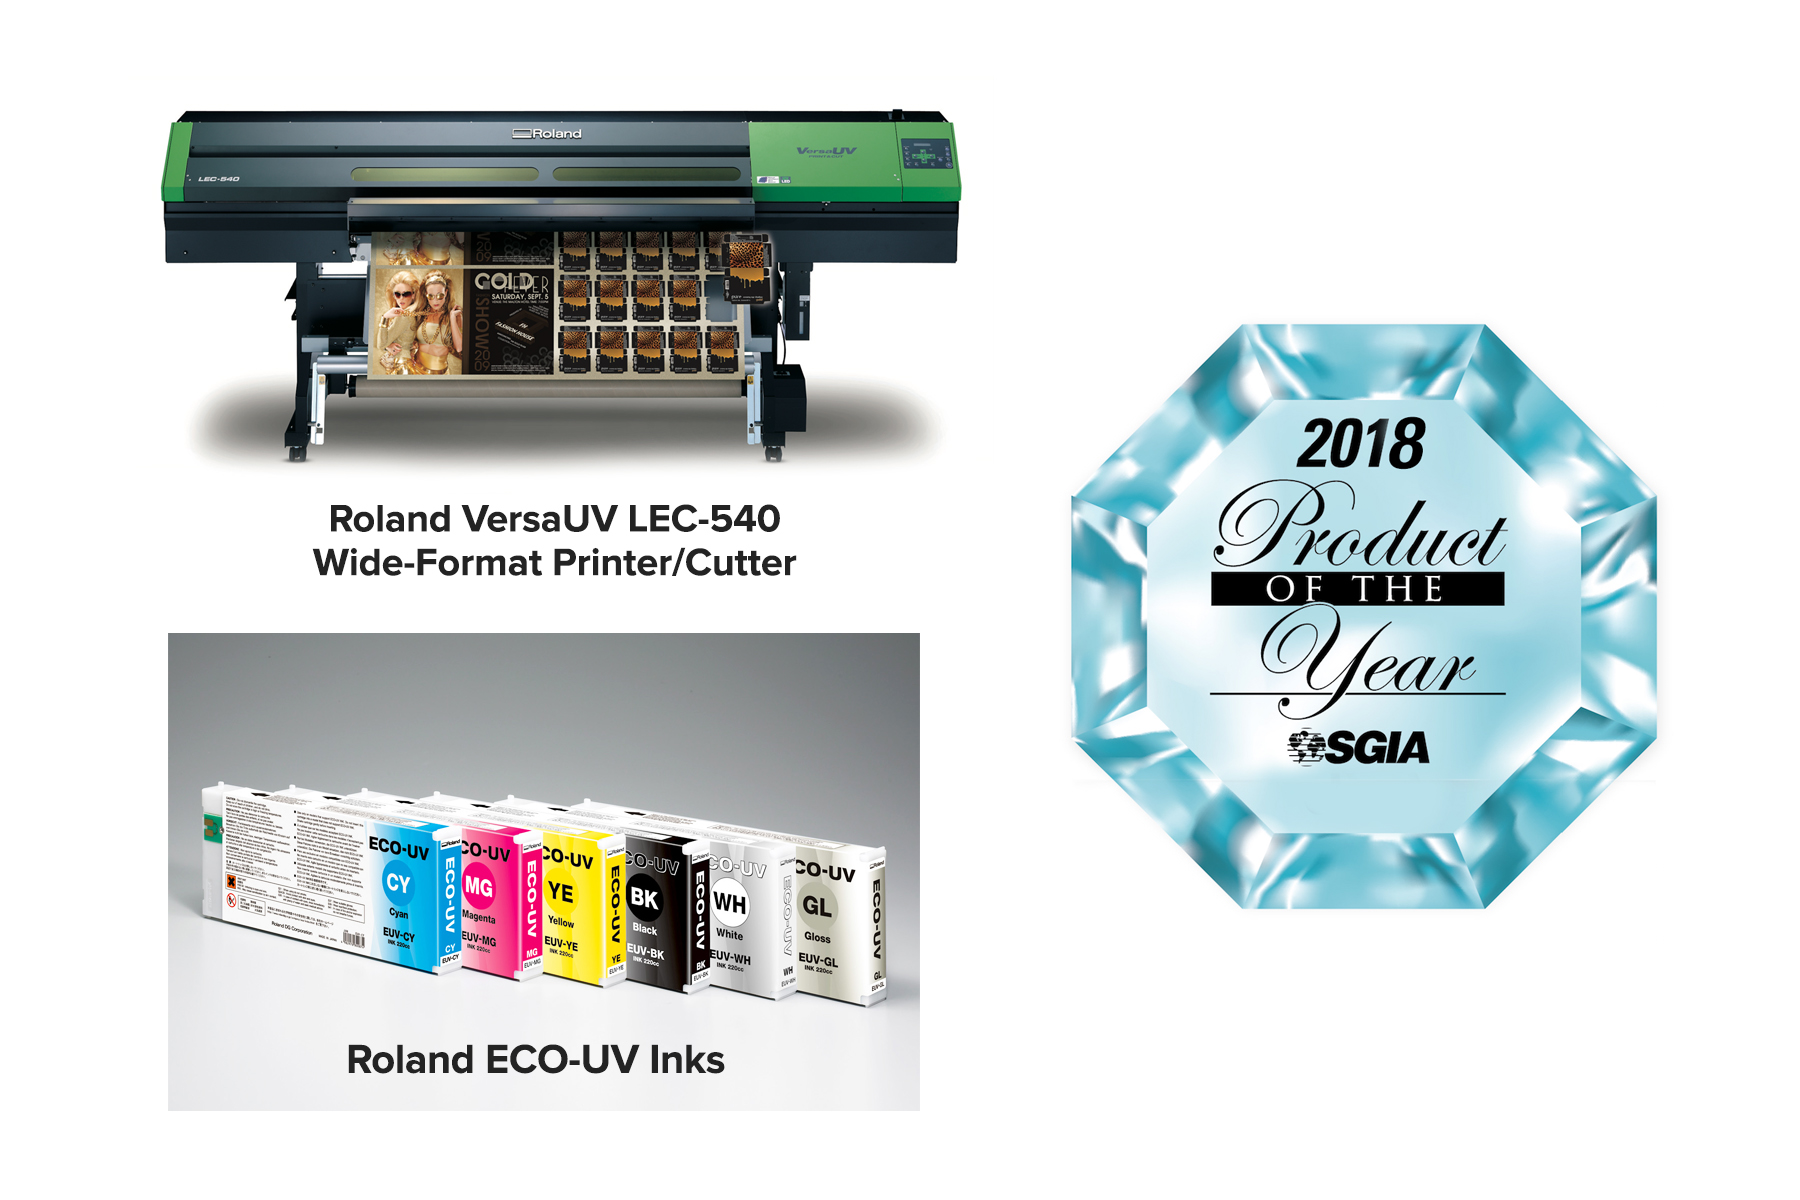 Roland's 2018 SGIA Product of the Year award-winning VersaUV LEC-540 printer/cutter and ECO-UV Inks